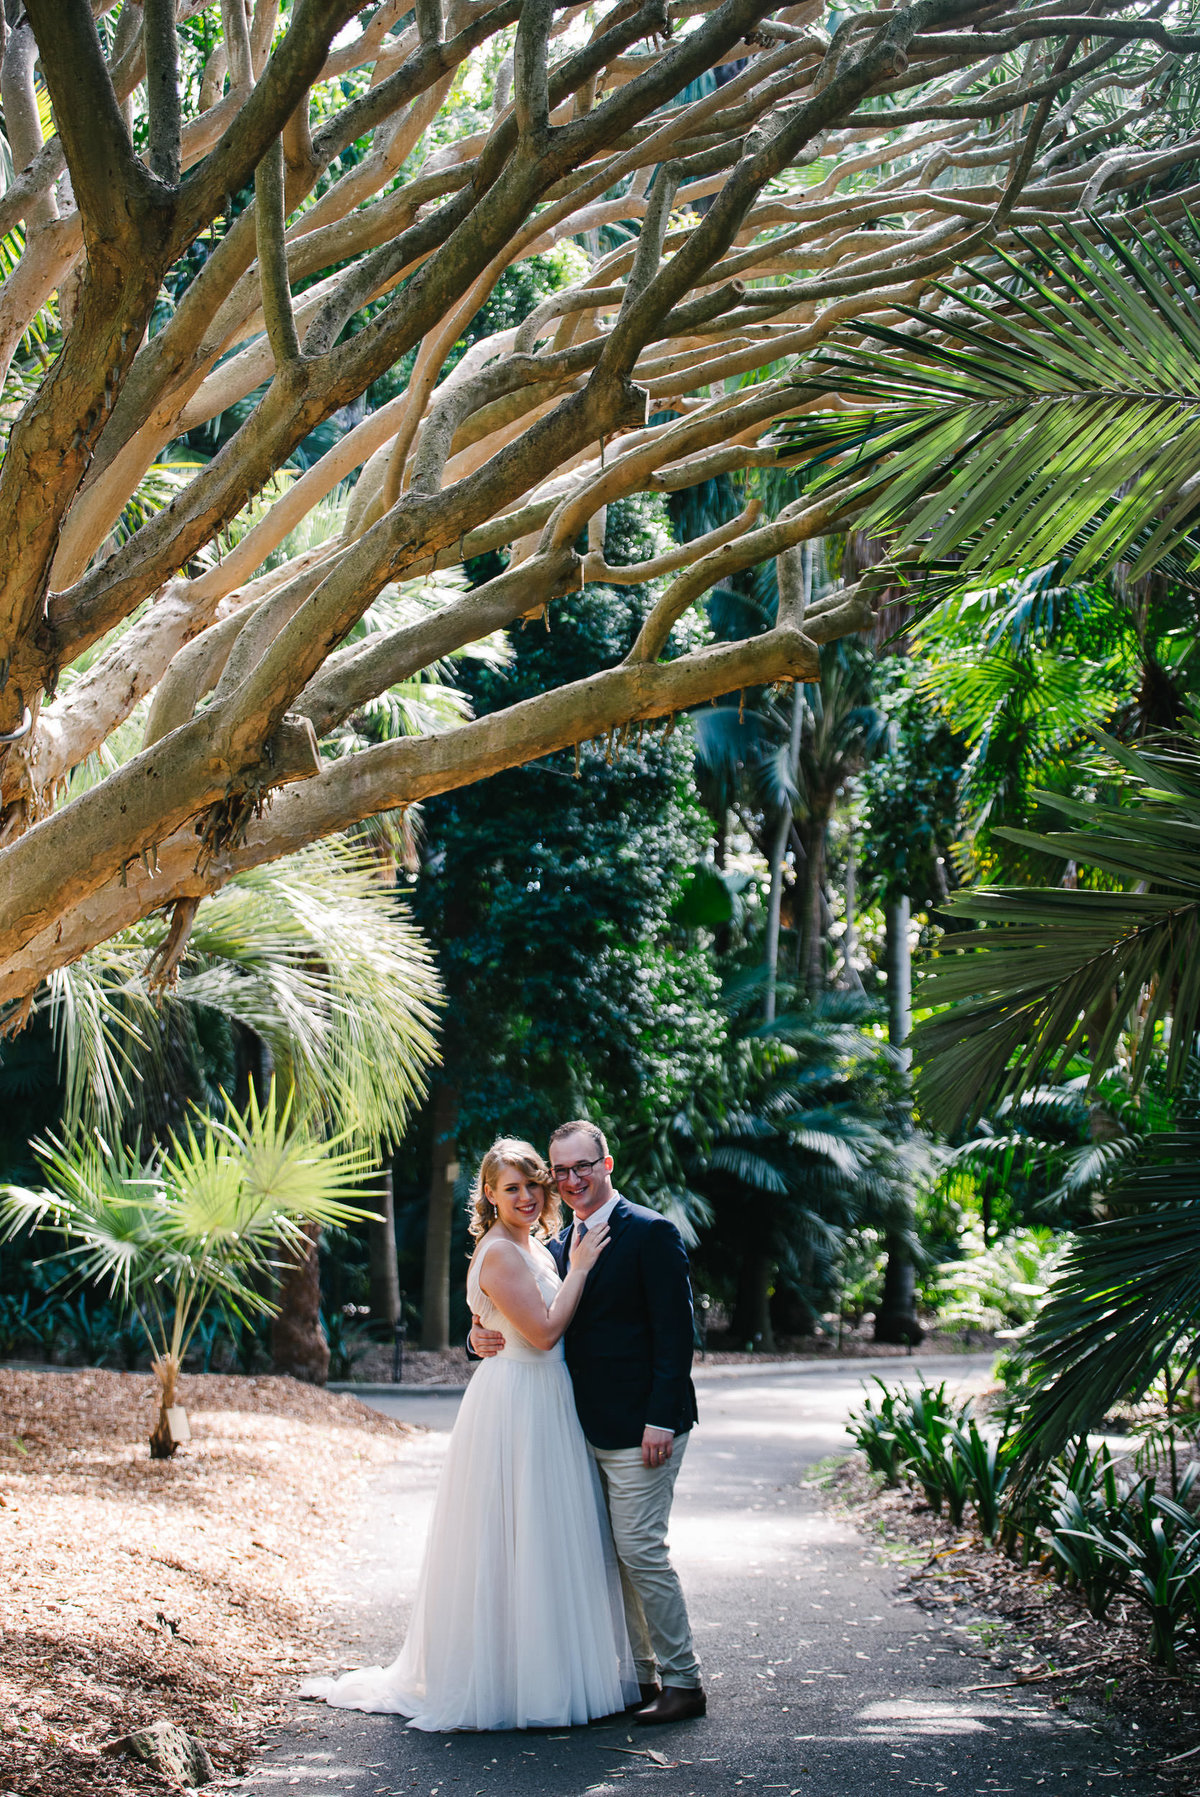 jessie-blake-royal-botanic-garden-sydney-wedding-68